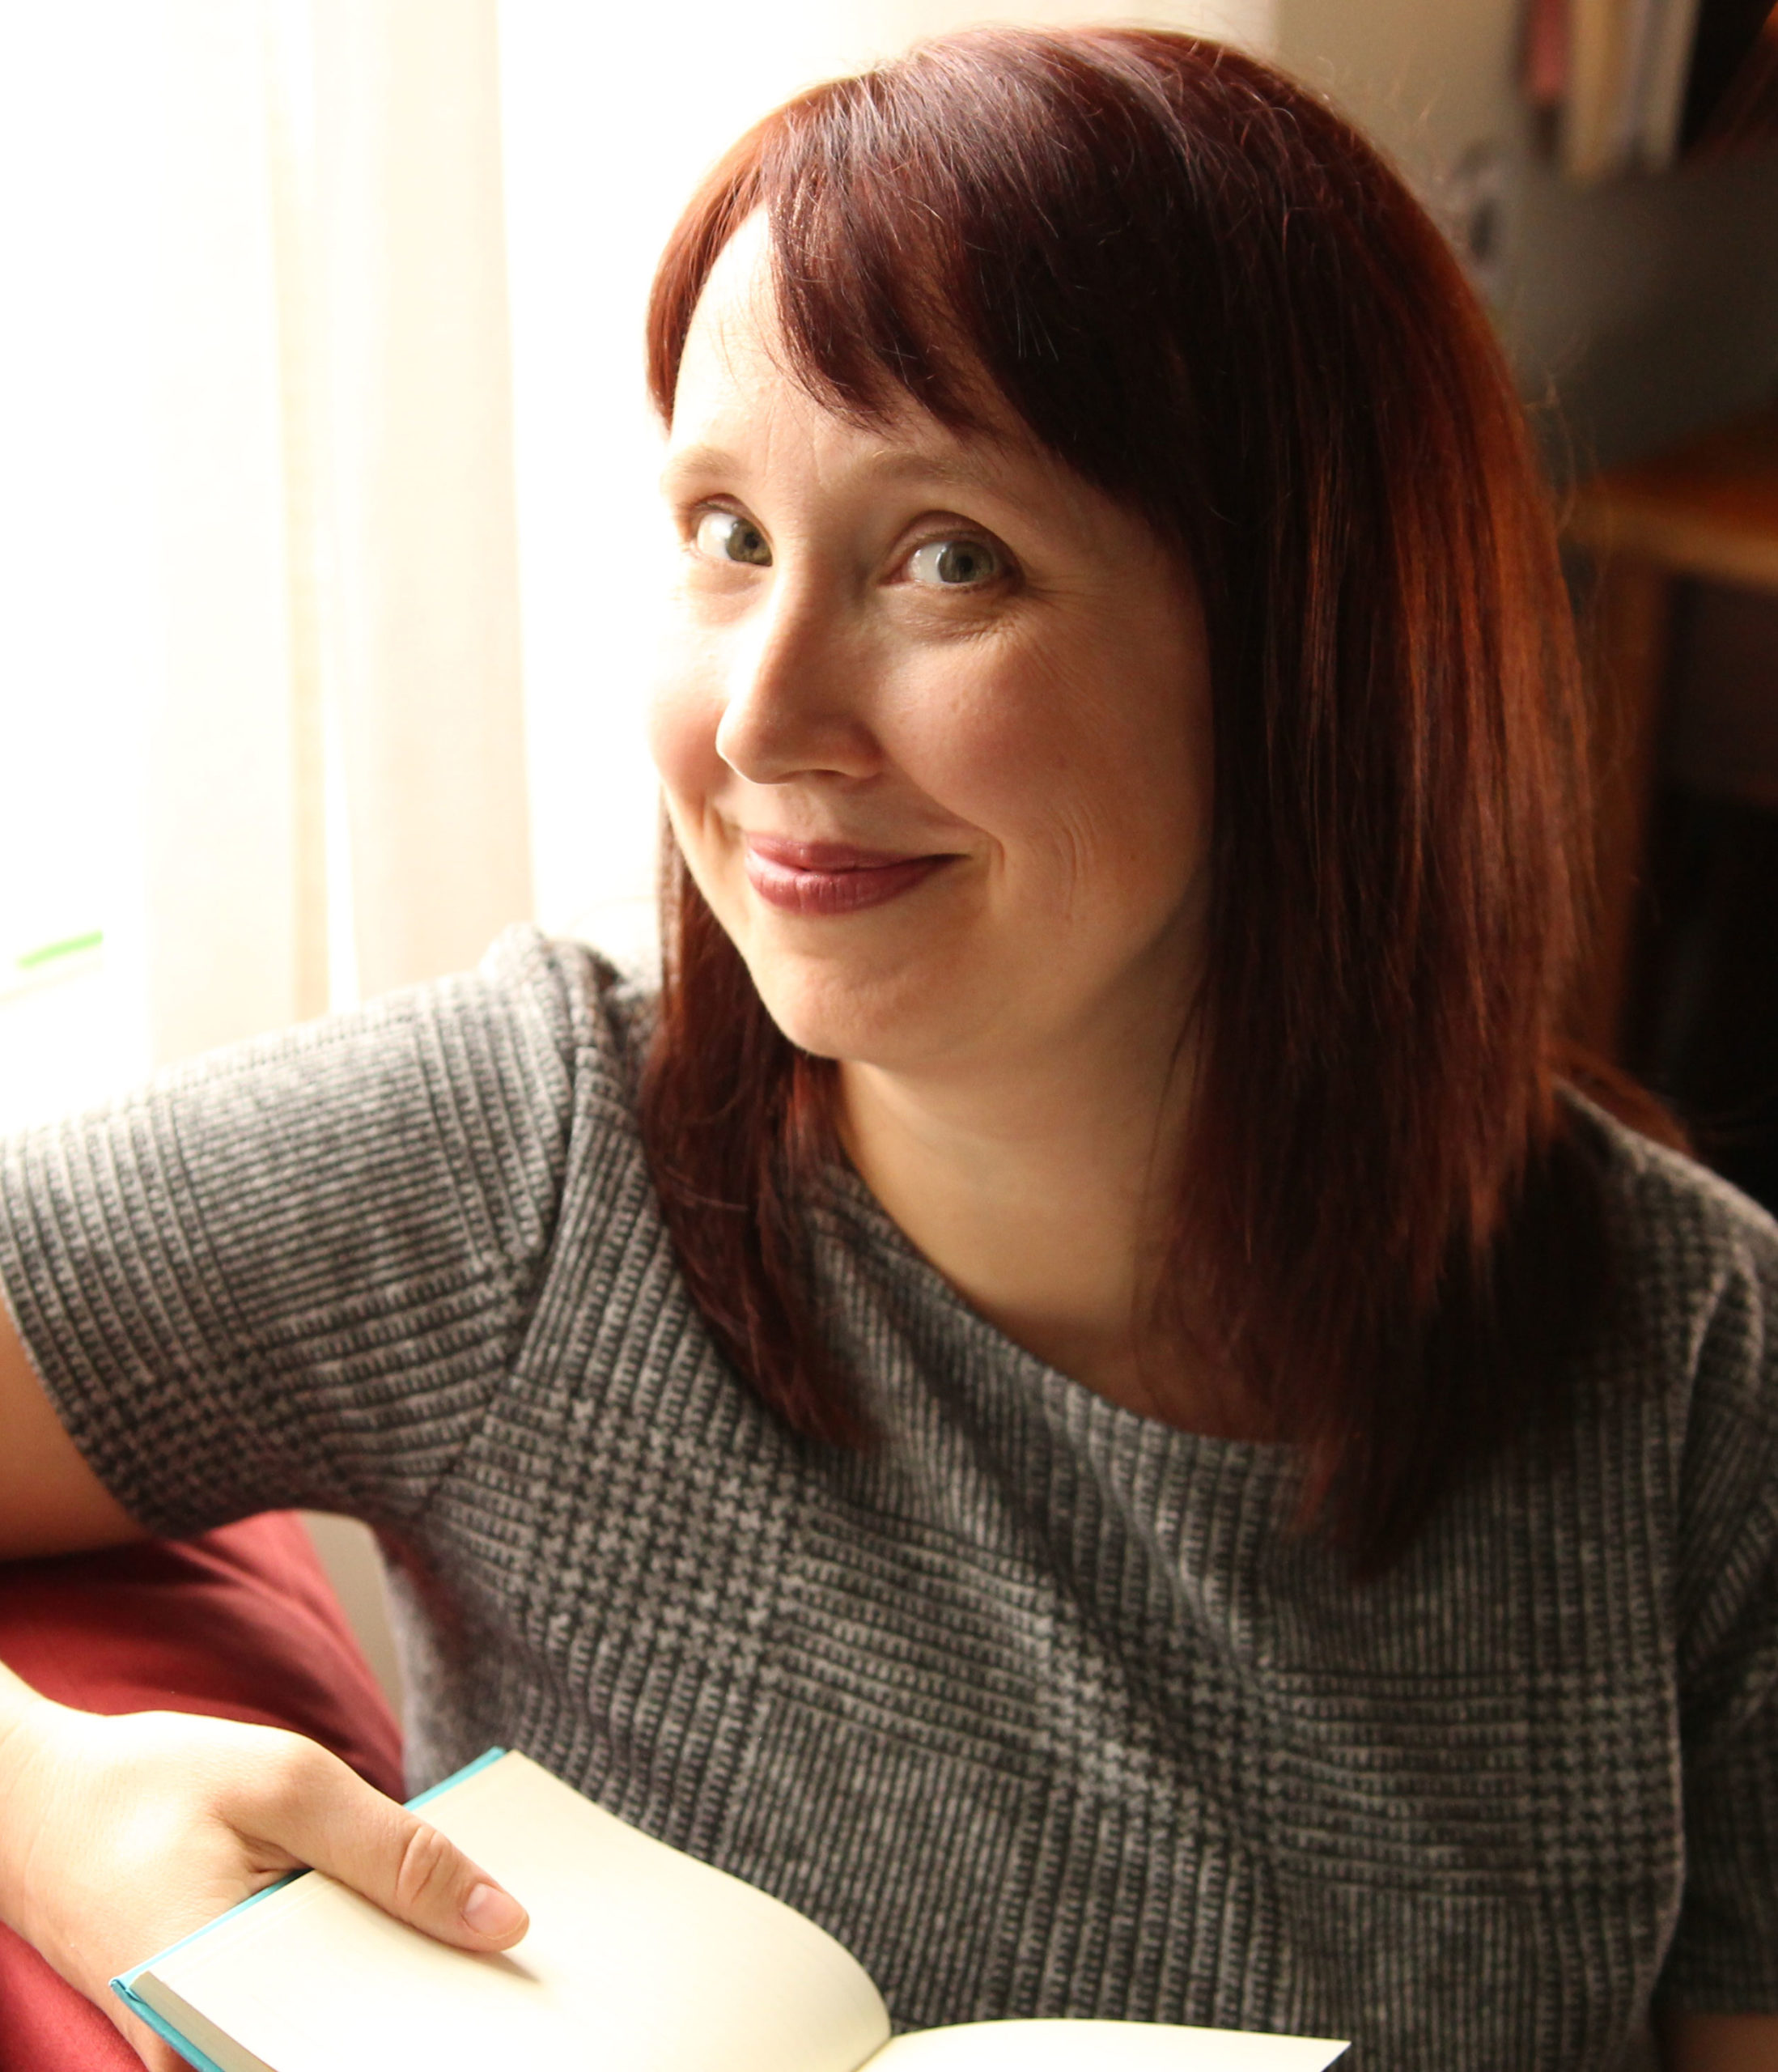 Rachel Thompson sitting at a pink chair, holding a book, looking at the camera.